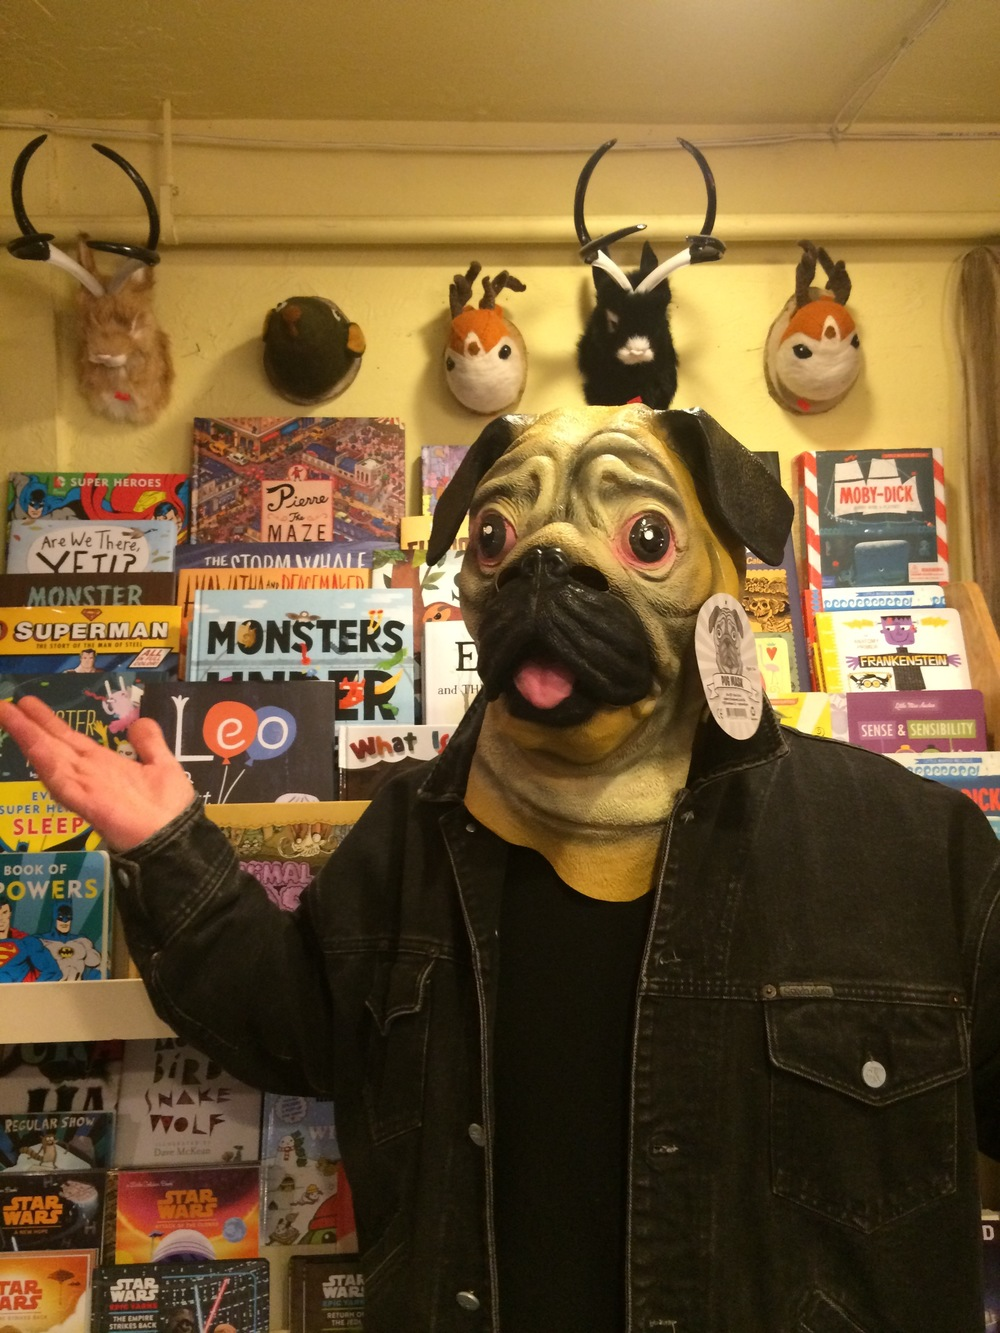 Marc models a pug mask at Boo Radley's in Spokane, WA, during one of our scout around town outings. (PS. Aren't those jackalopes awesome? I love jackalopes, they're one of my spirit animals...just ask my Dad, Donald.)